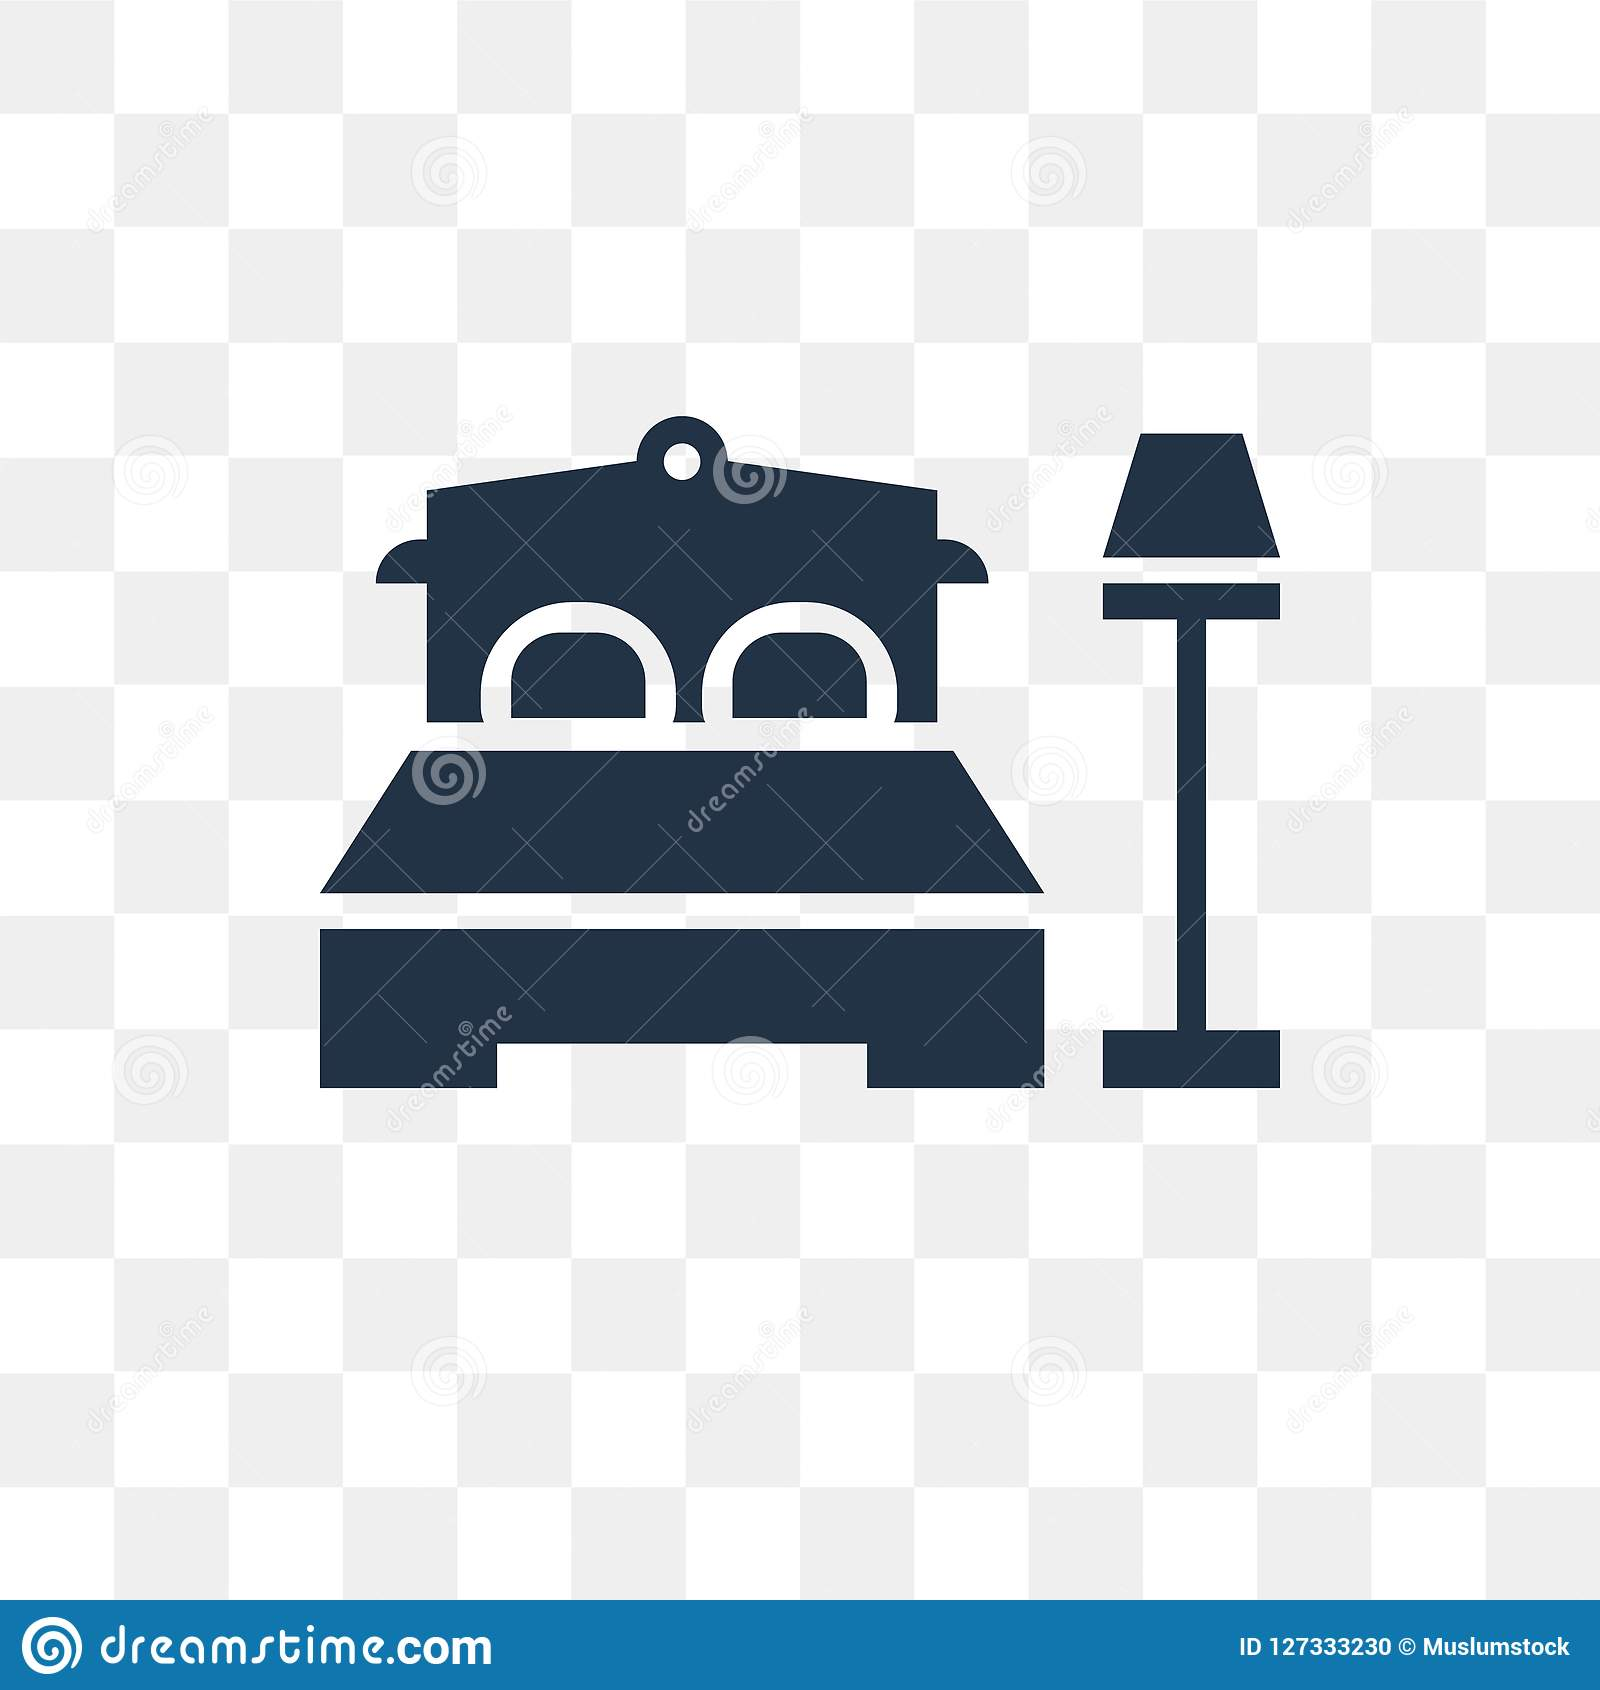 Bedroom Vector Icon Isolated On Transparent Background Bedroom